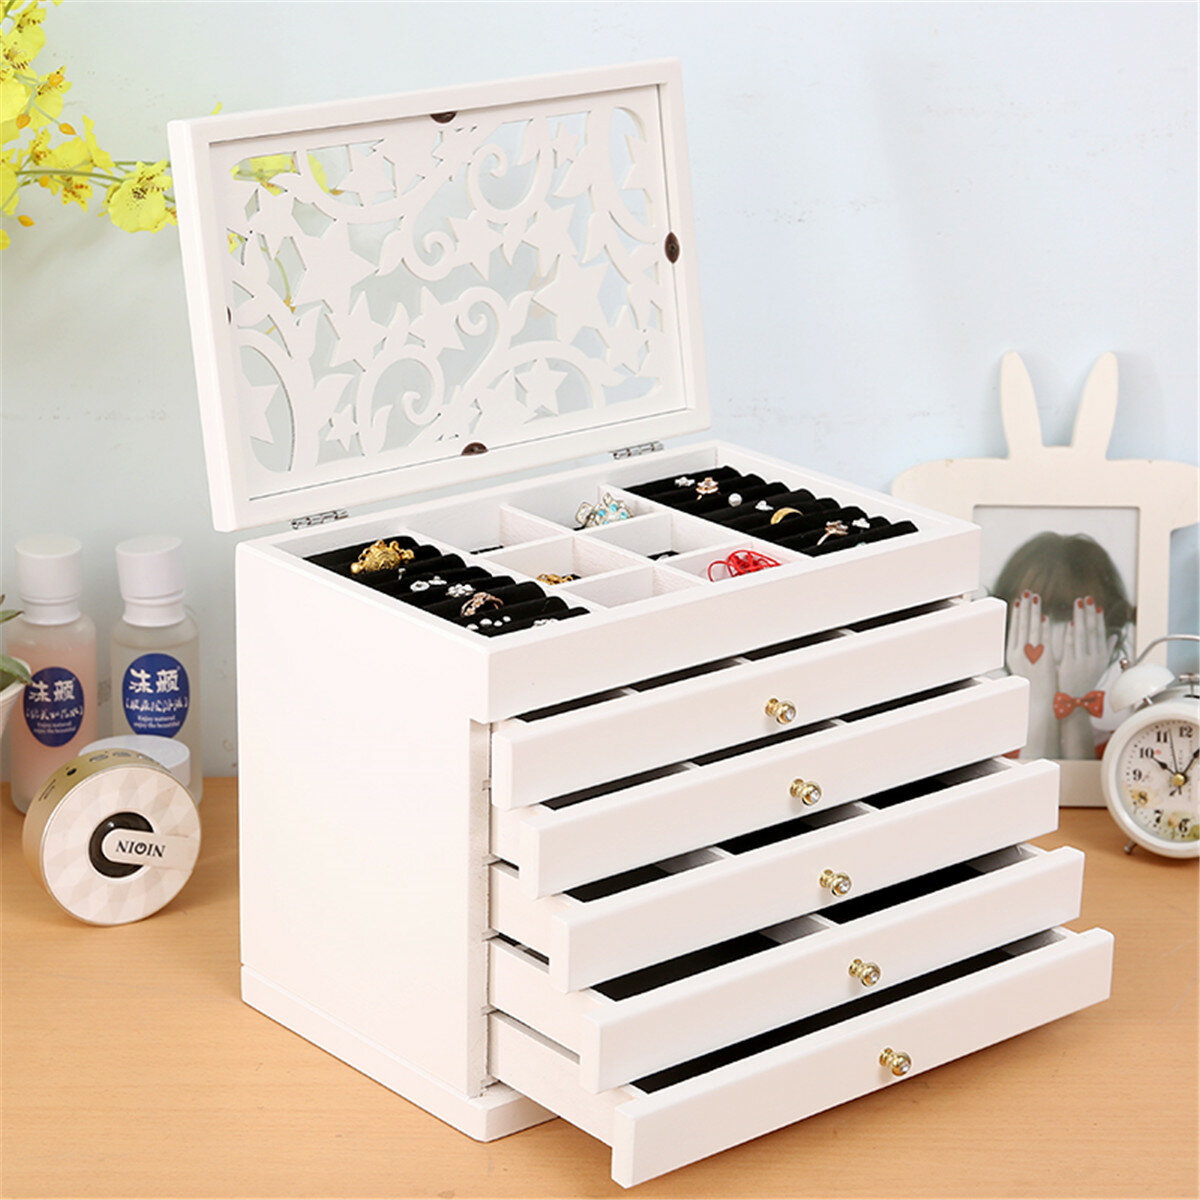 Fashion Jewelry Storage Box Leather Earrings Necklace Rings - 7